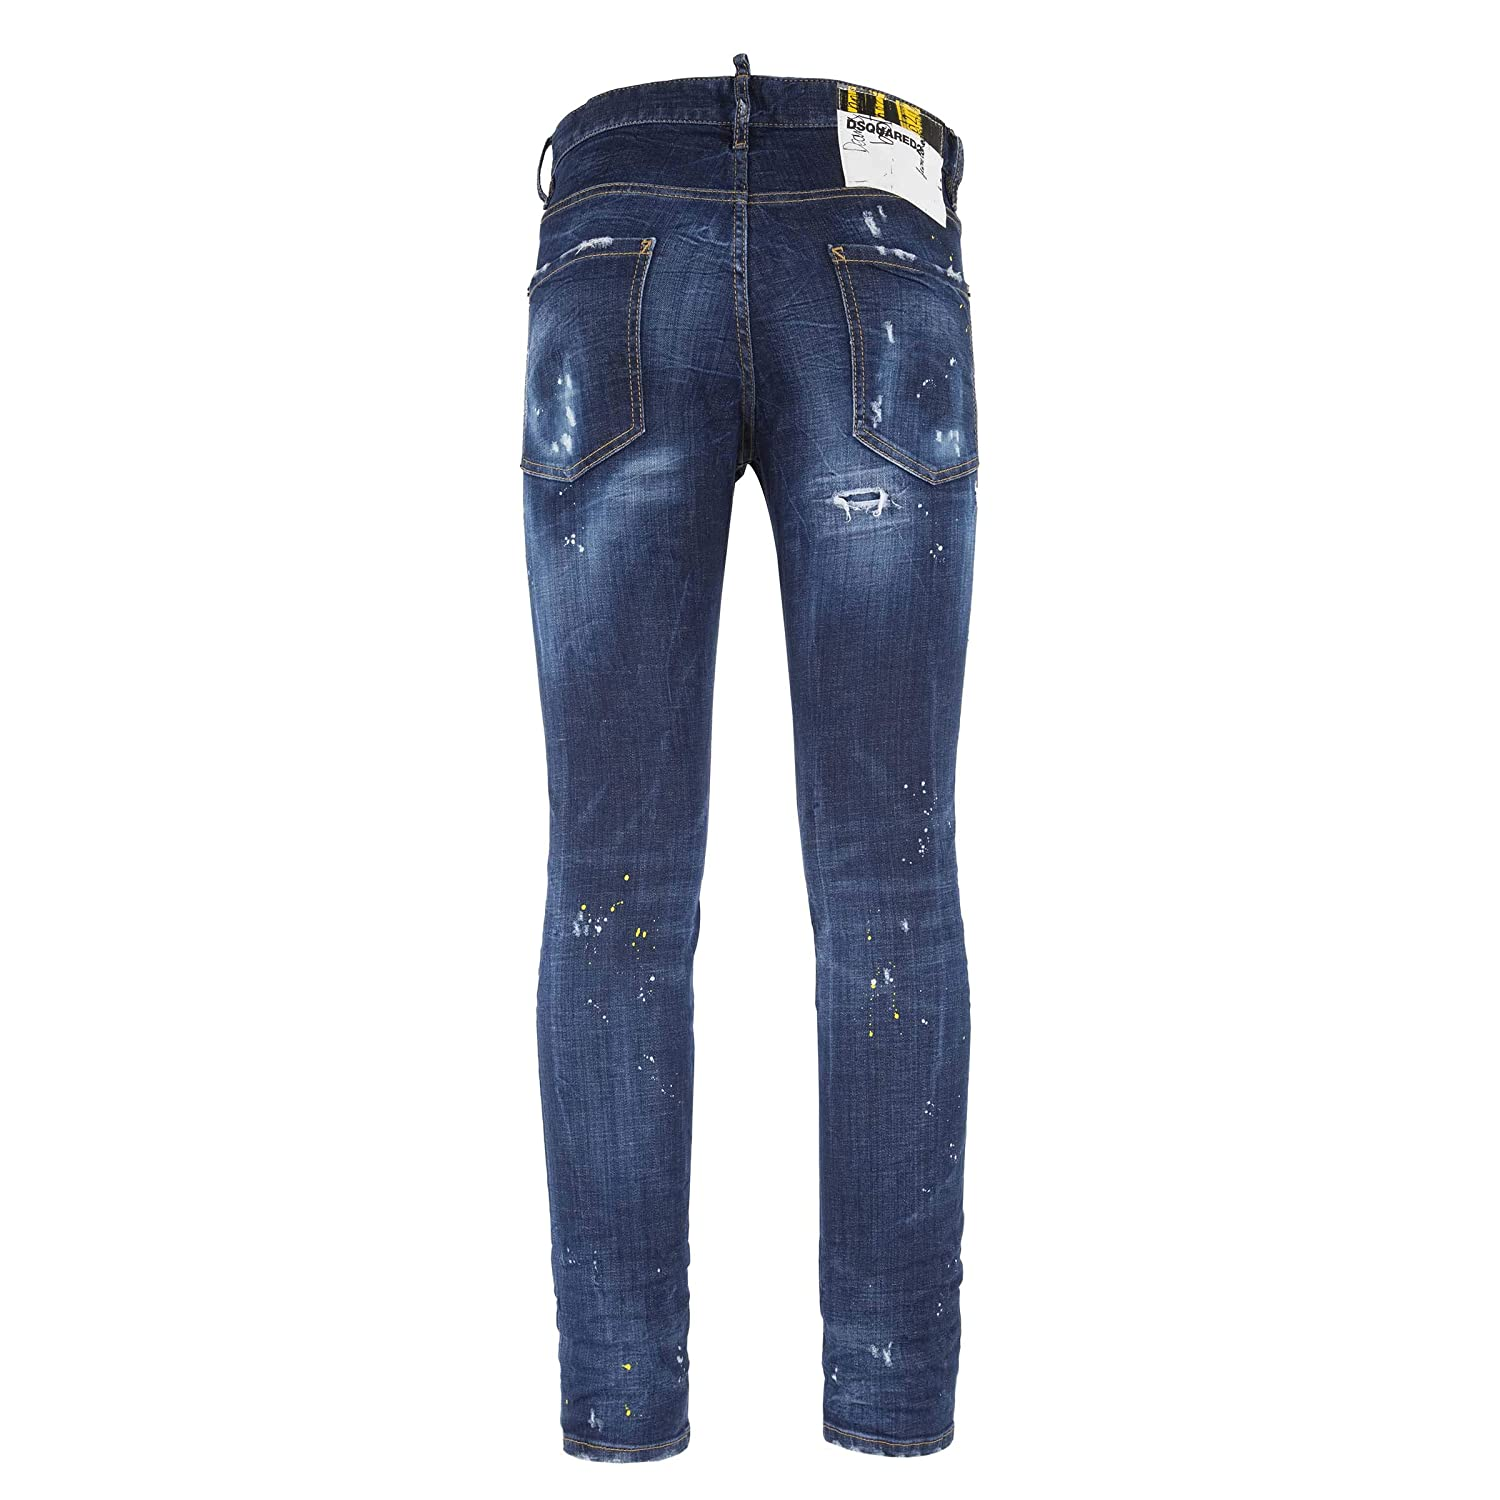 5bec5fc0904 Amazon.com: DSQUARED2 Men's Cool Guy Jeans in Yellow Ripped Spots Wash:  Clothing